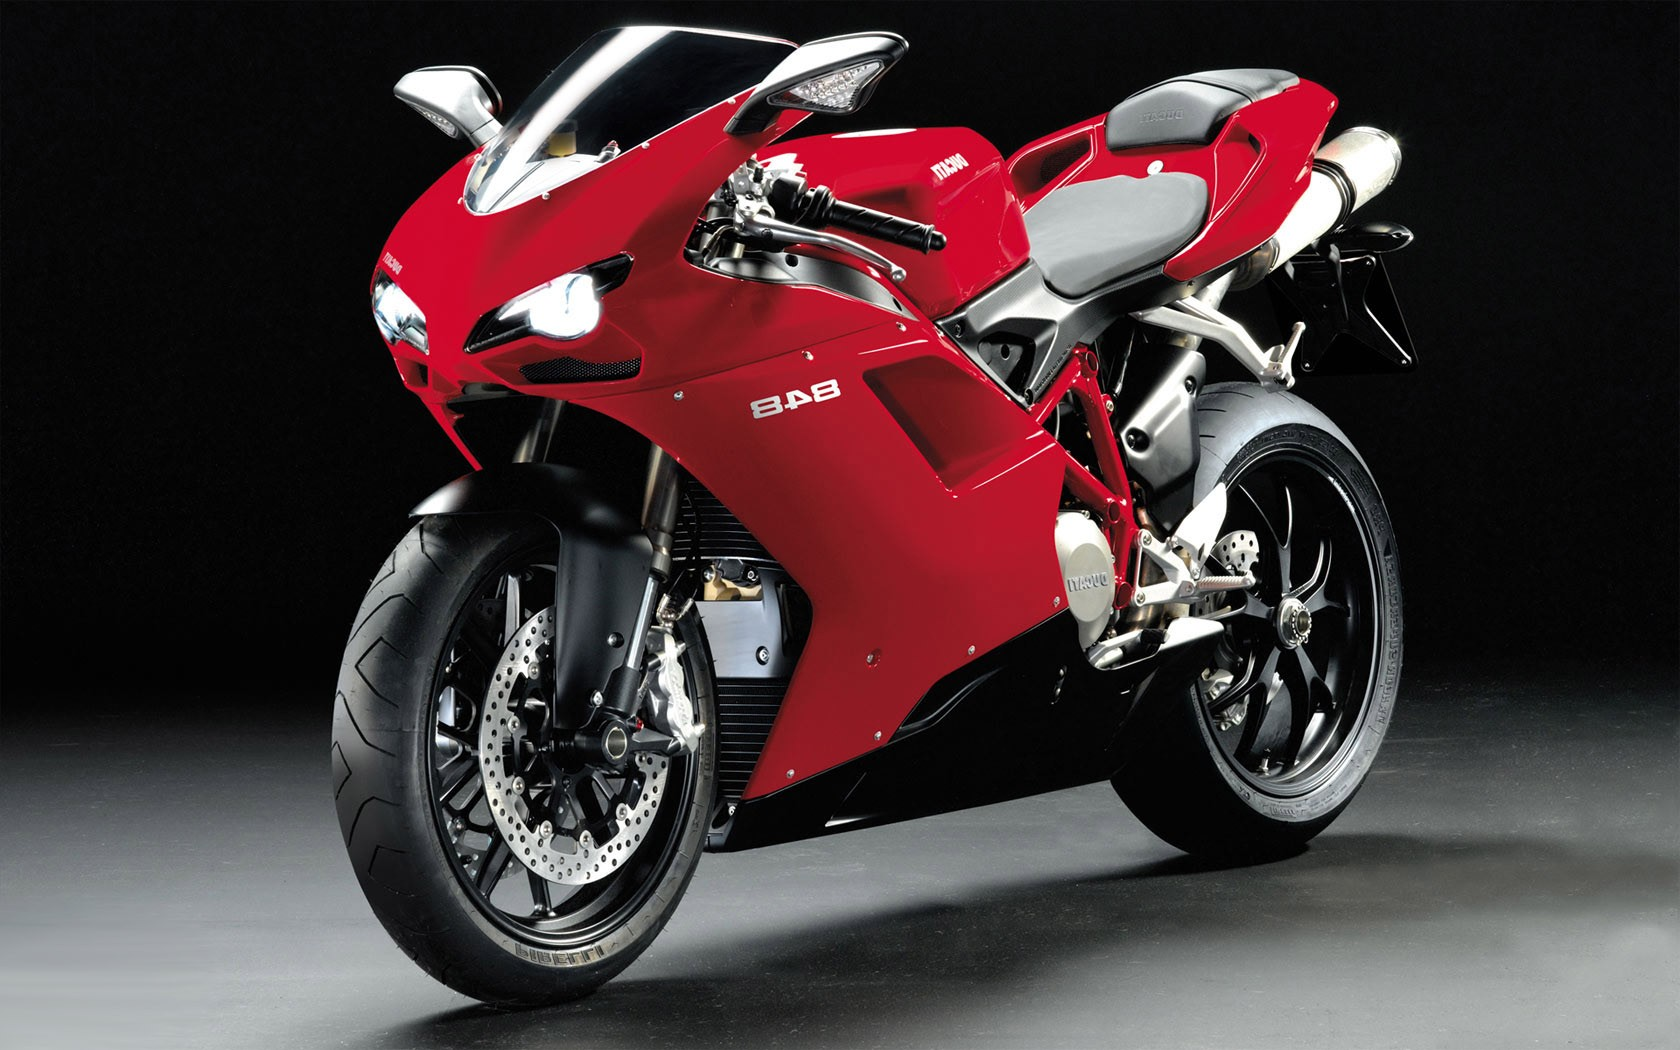 Sport Bike Wallpaper Desktop Backgrounds: [47+] Ducati Desktop Wallpaper On WallpaperSafari